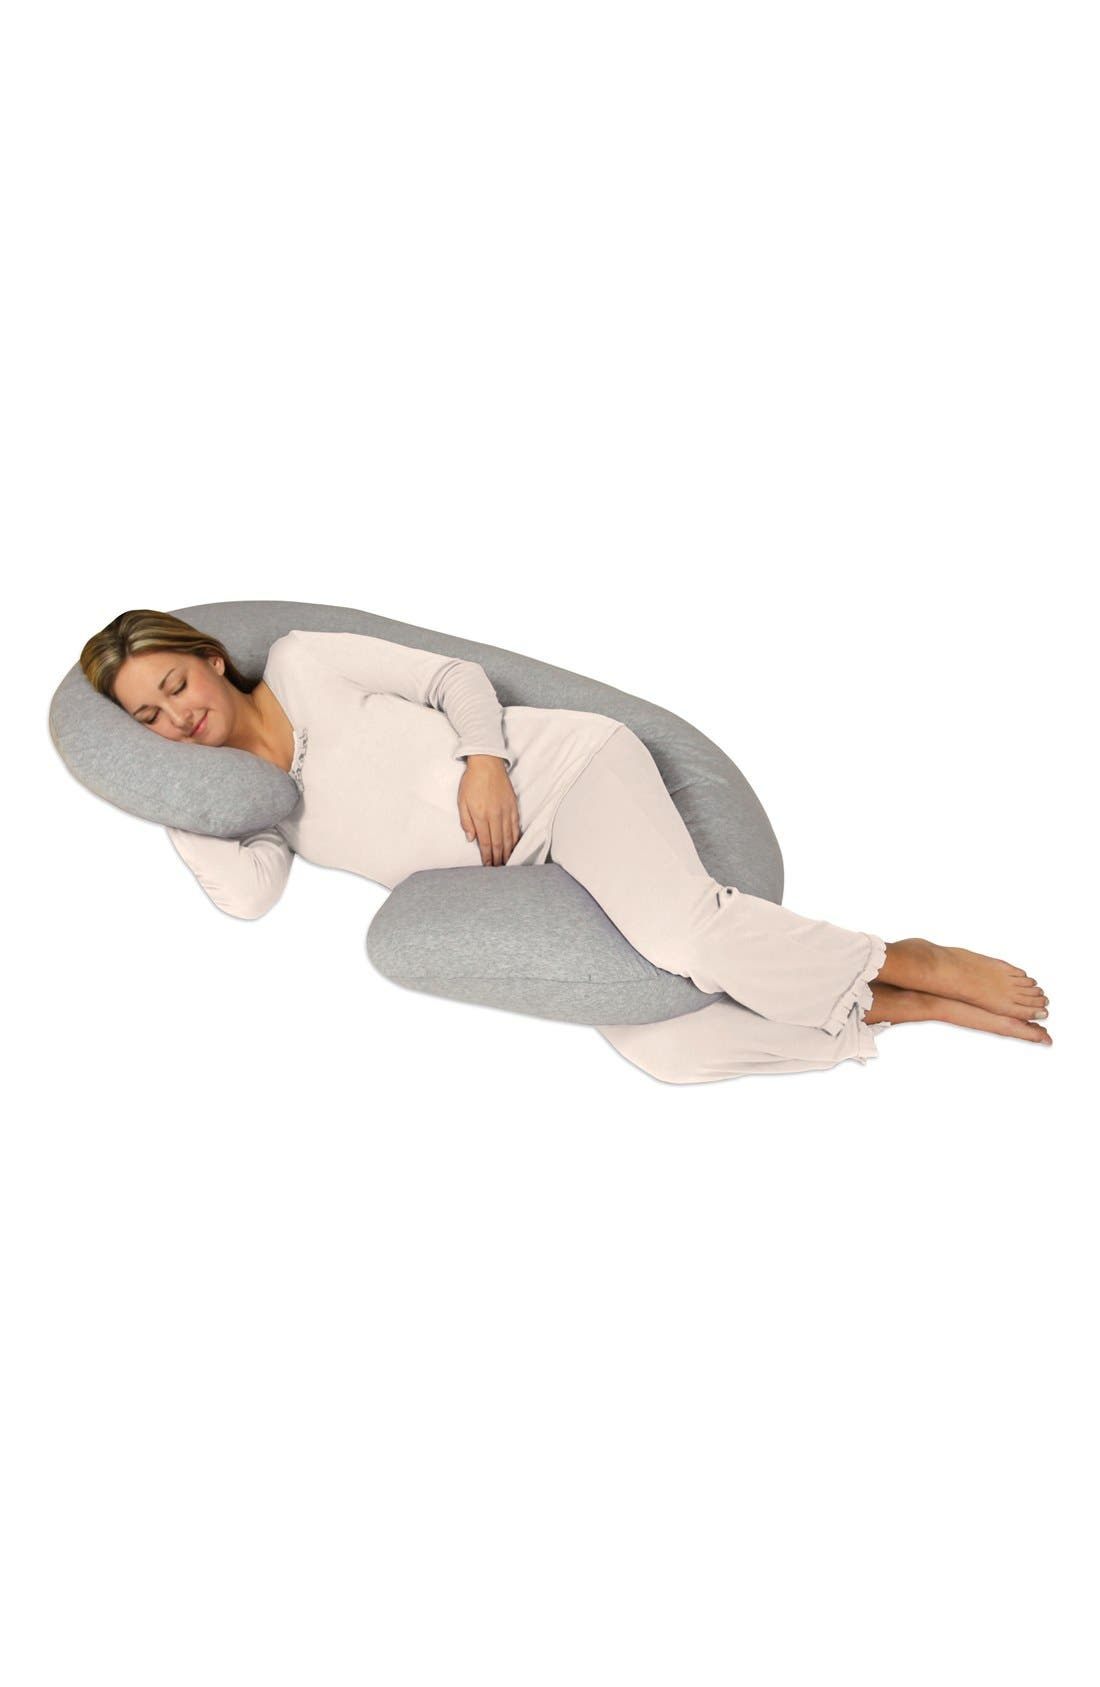 Snoogle Chic Full Body Pregnancy Support Pillow with Jersey Cover,                             Alternate thumbnail 3, color,                             HEATHER GREY